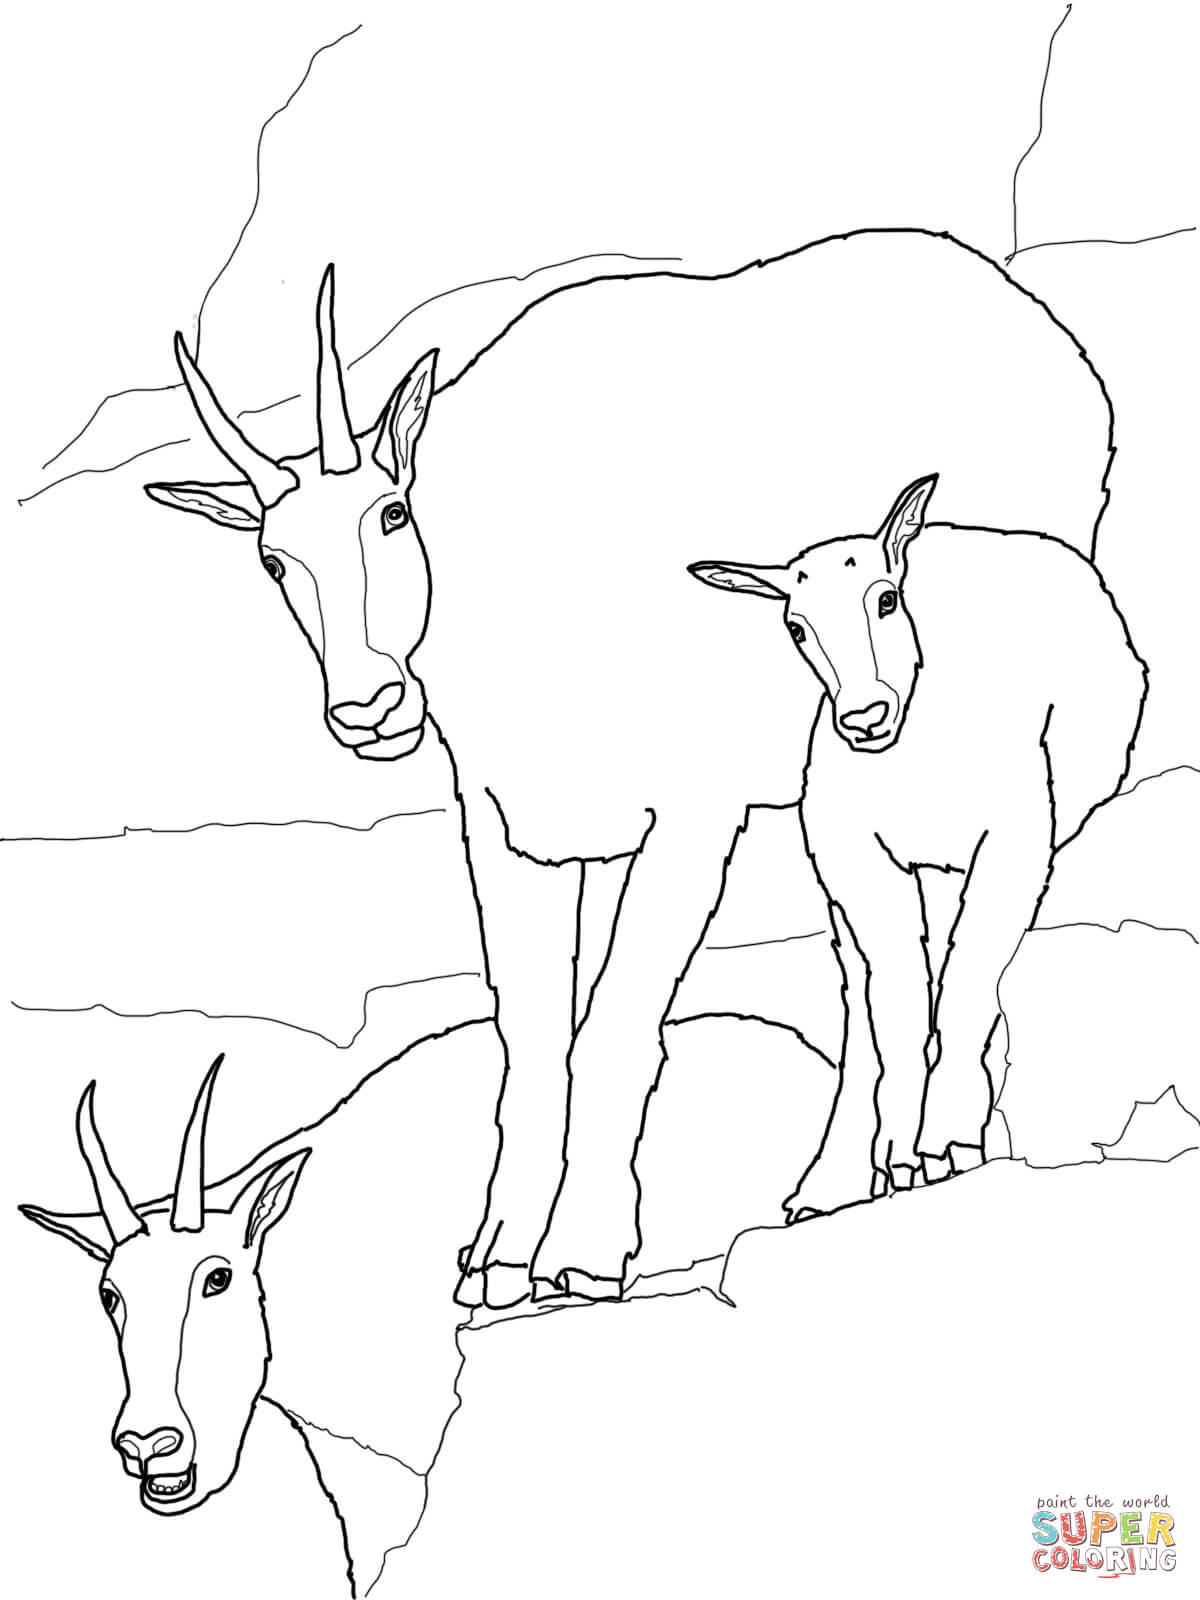 goat pictures to color goat coloring page free printable coloring pages goat pictures to color